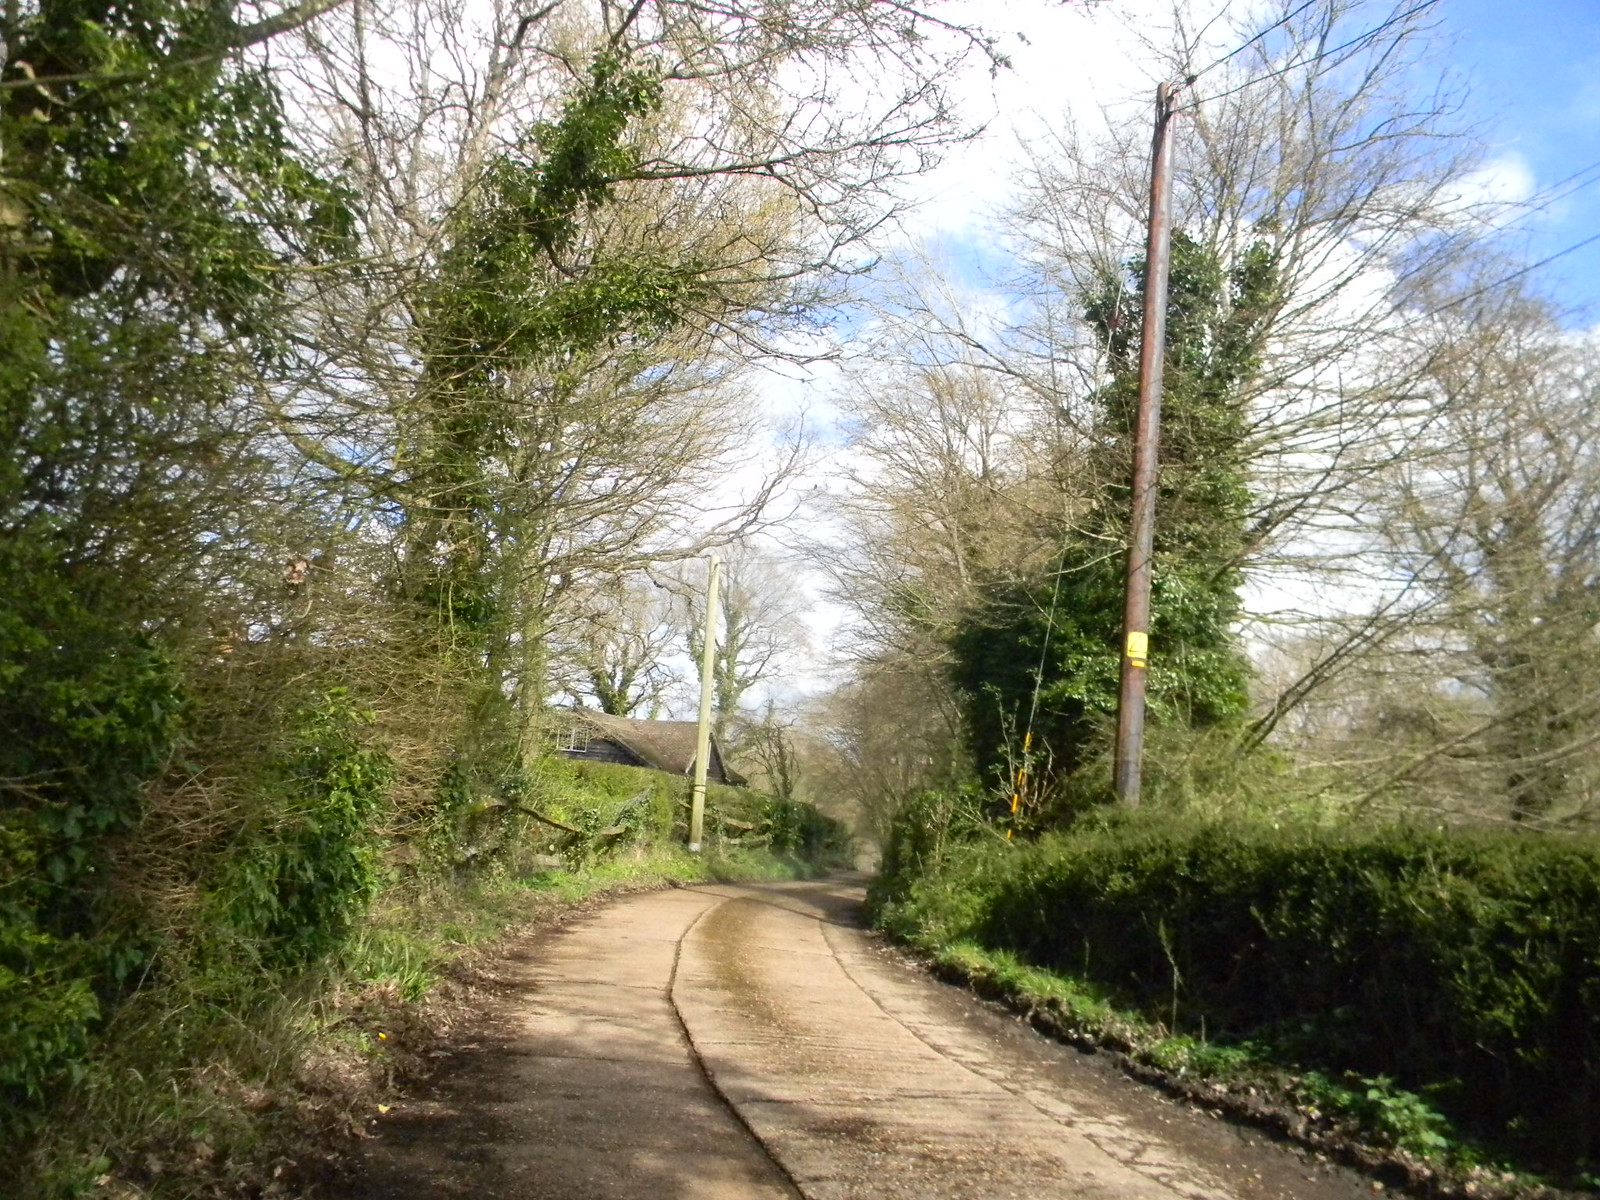 A bend in the road Etchingham to Wadhurst